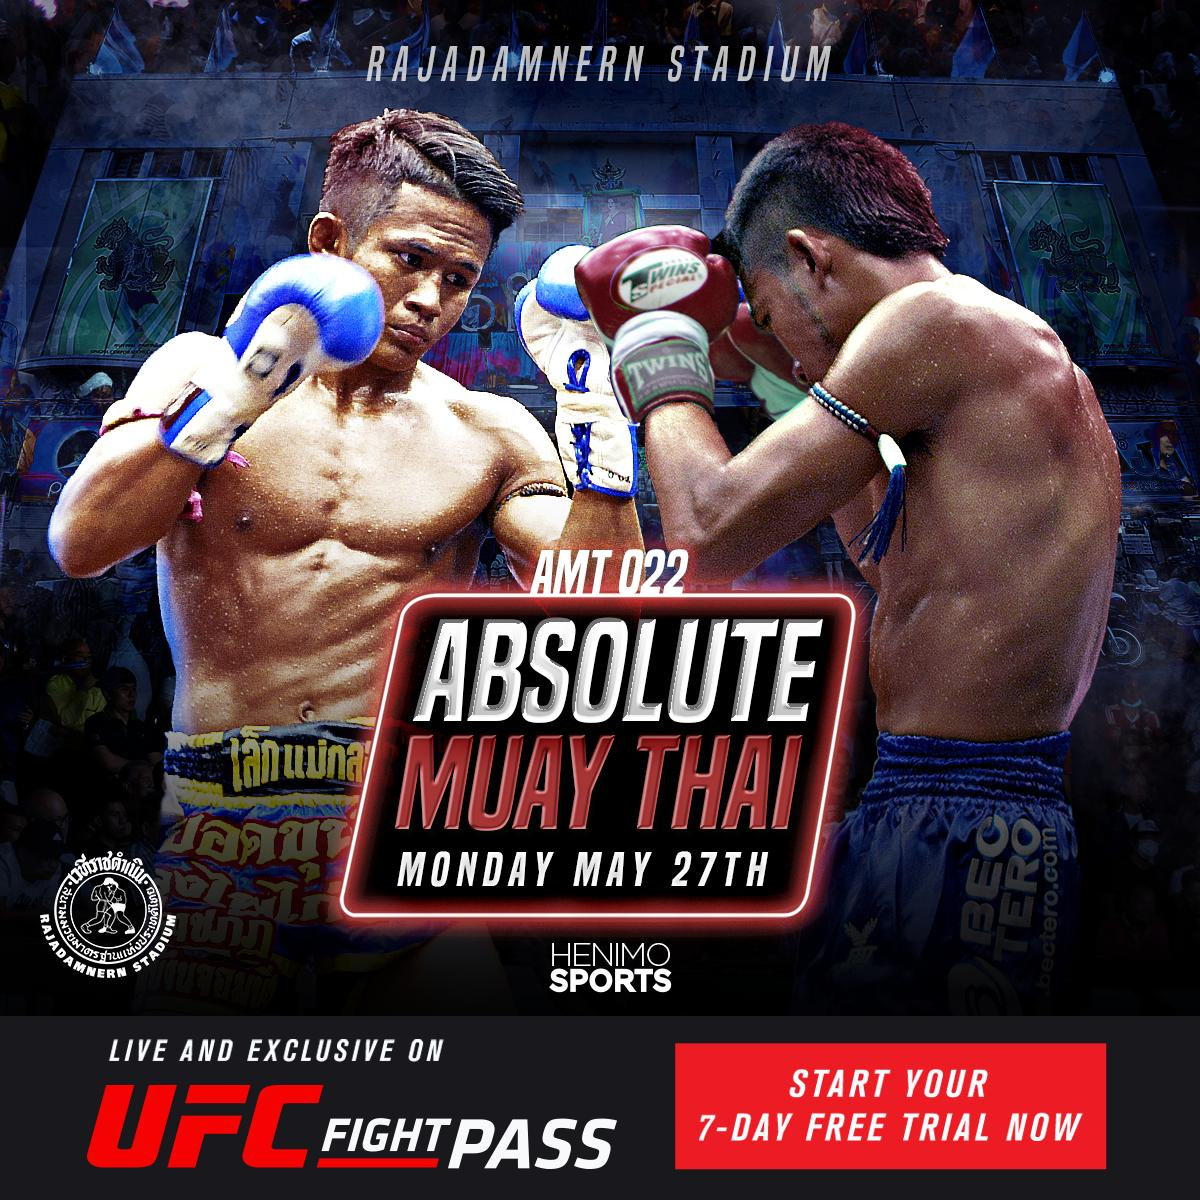 The action doesn't end on Sunday!  We got back to back days of #AbsoluteMuayThai coming up on Monday and Tuesday!